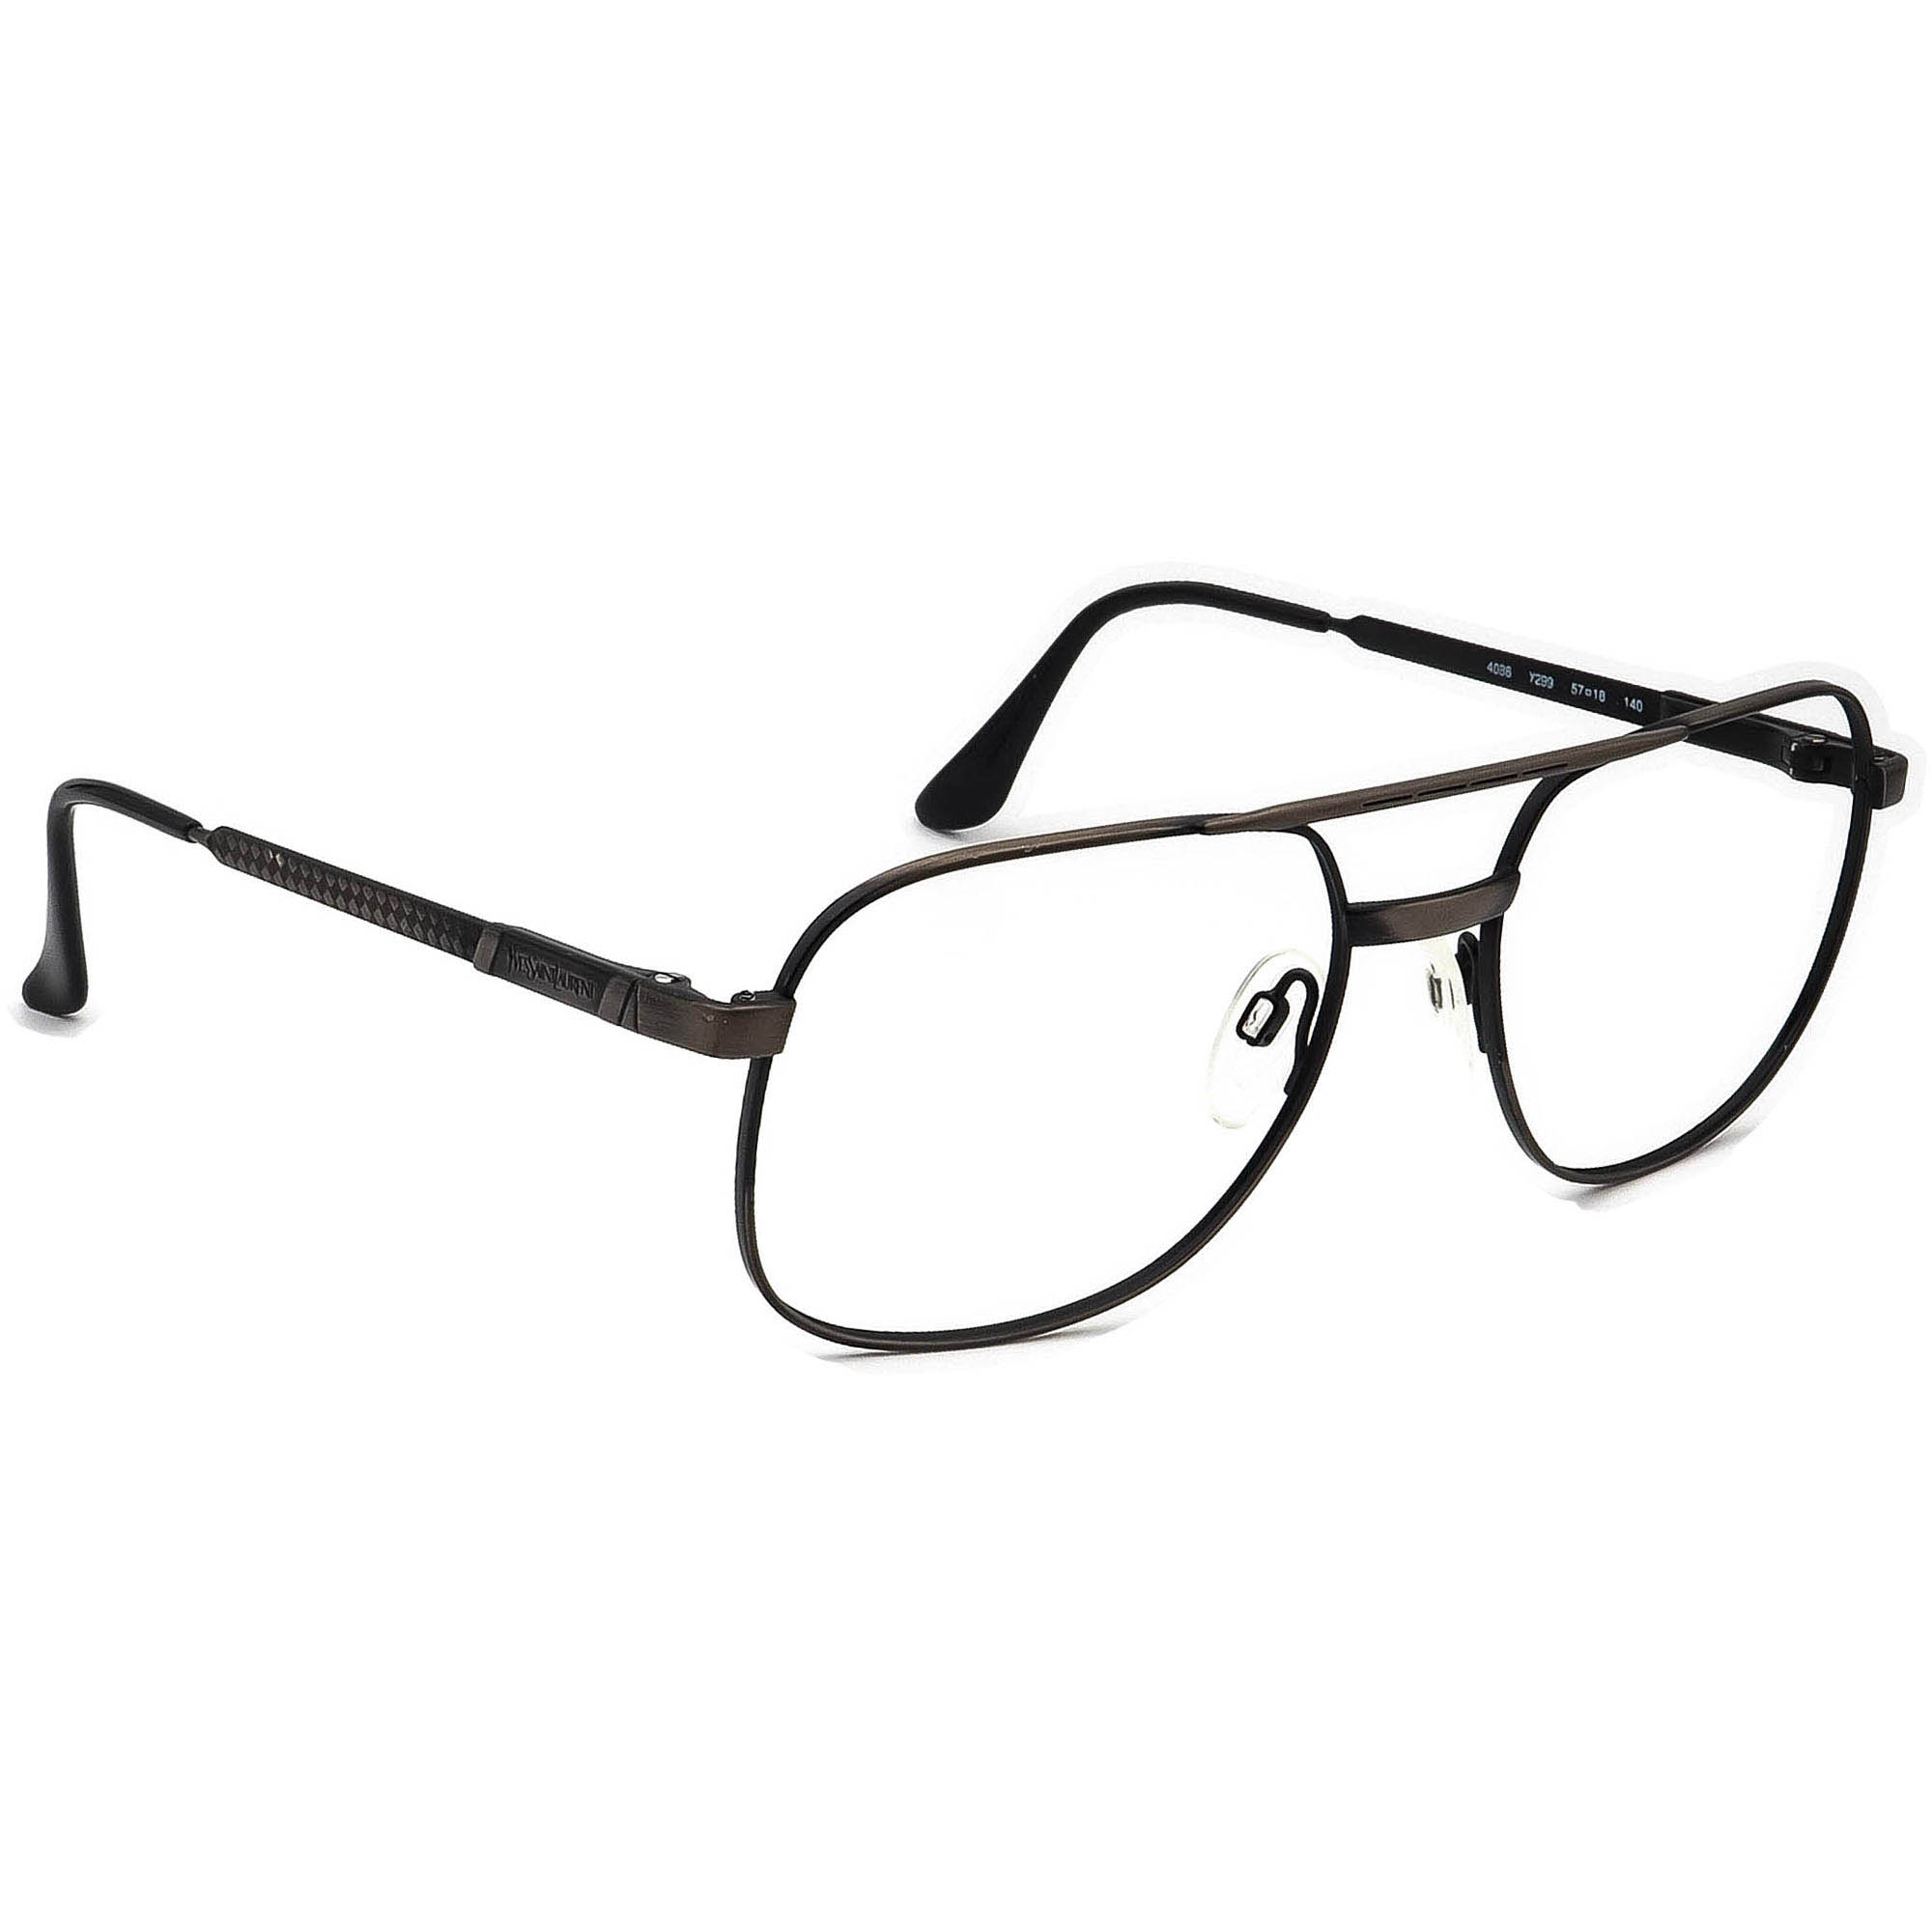 Yves Saint Laurent 4086 y299 Sunglasses Frame Only